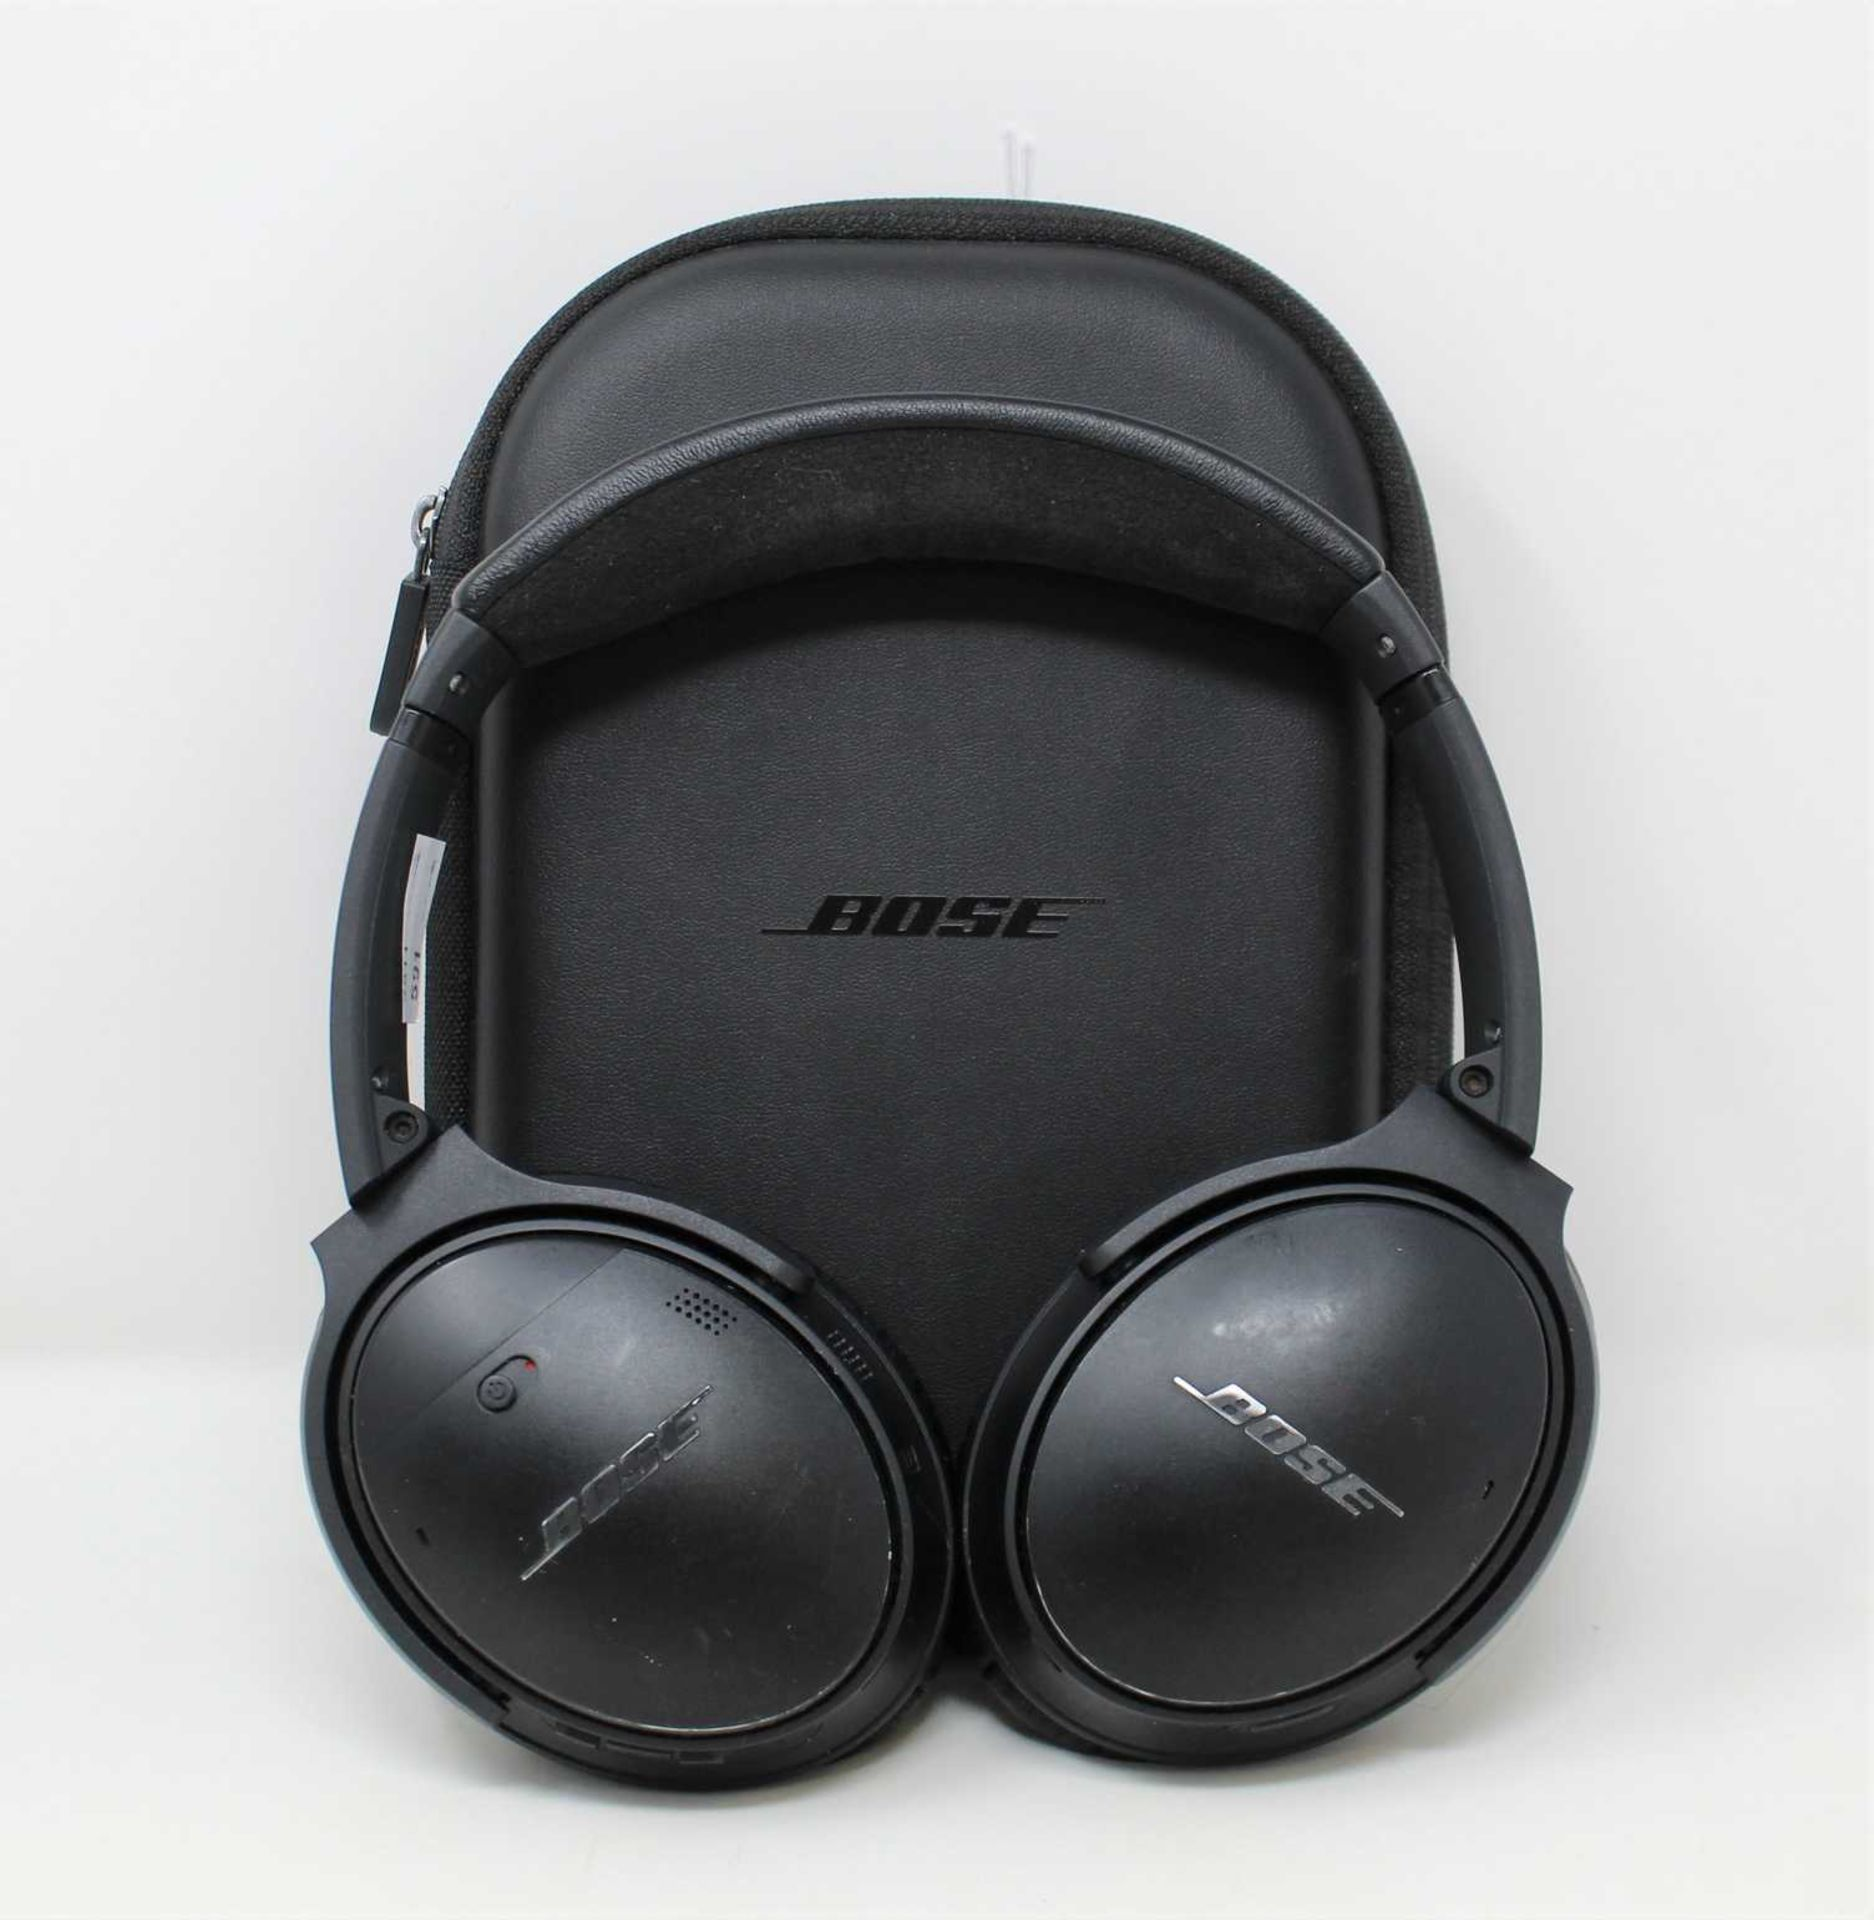 A pre-owned pair of Bose QuietComfort 35 II Wireless Headphones in Black with storage case (Some